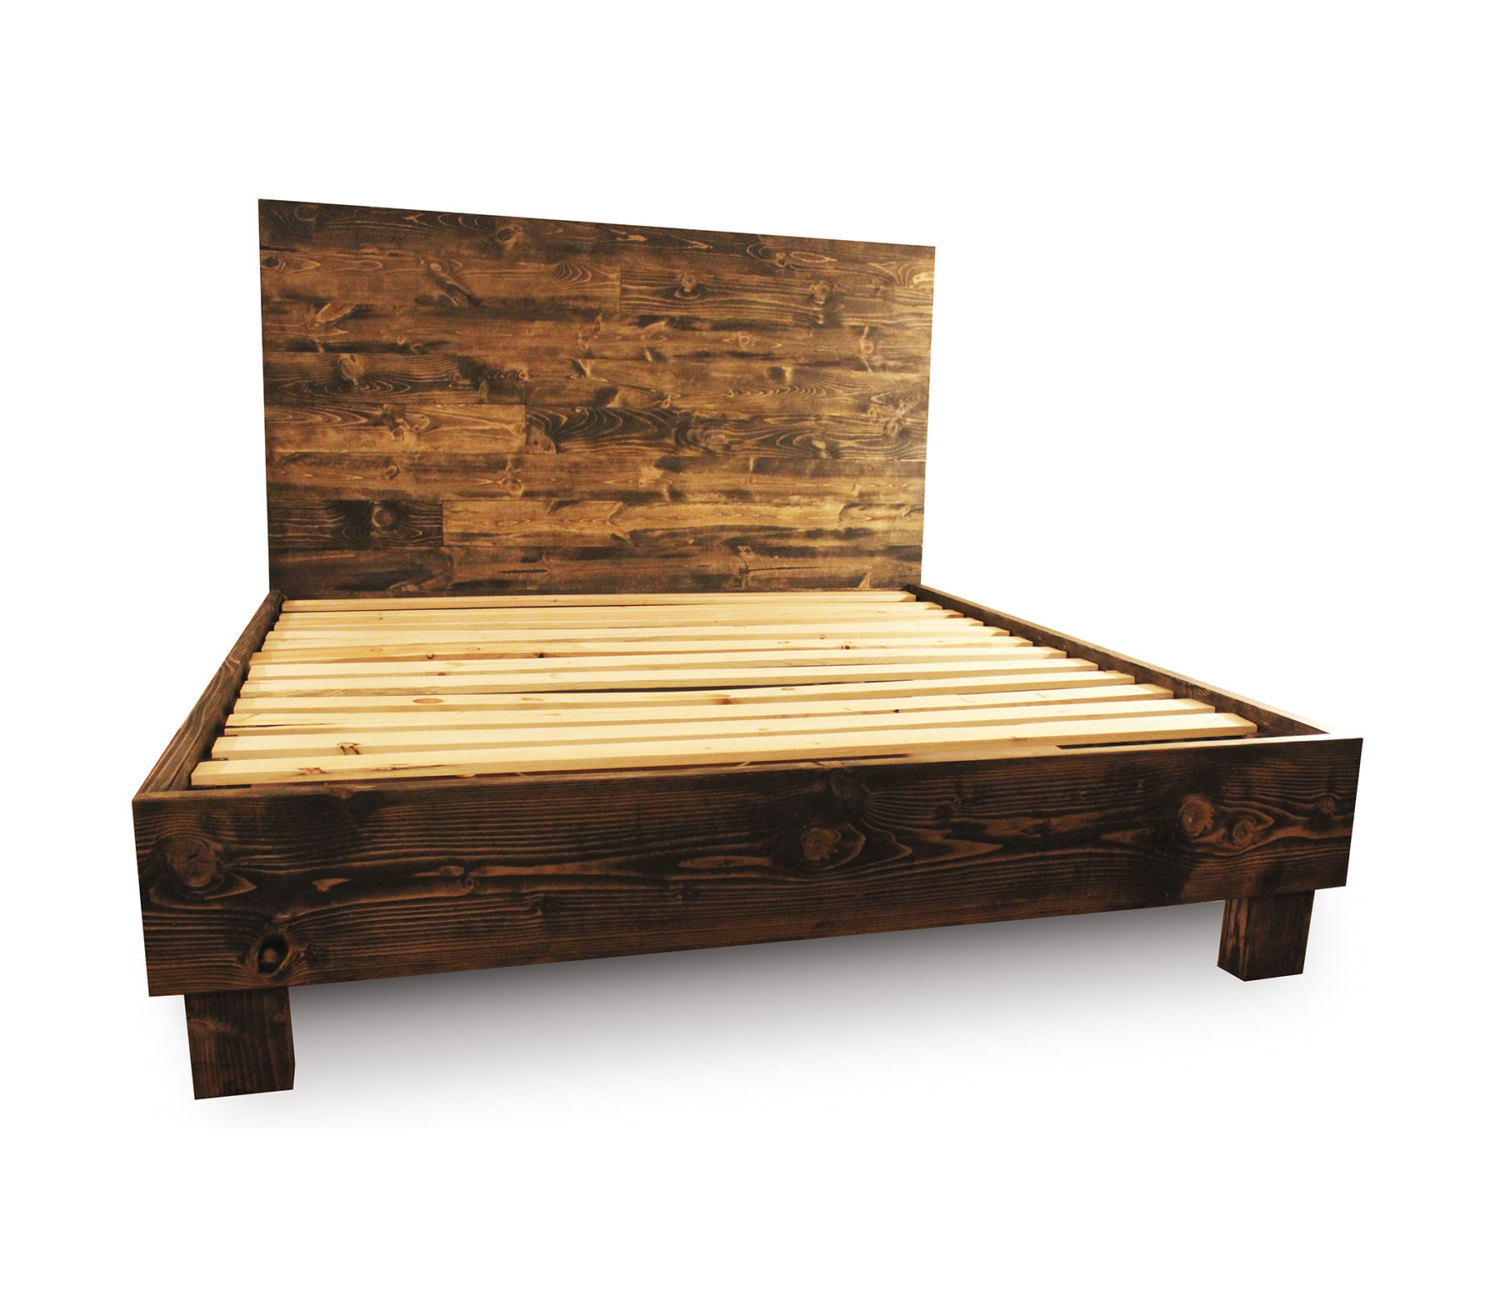 Reclaimed wood bed.